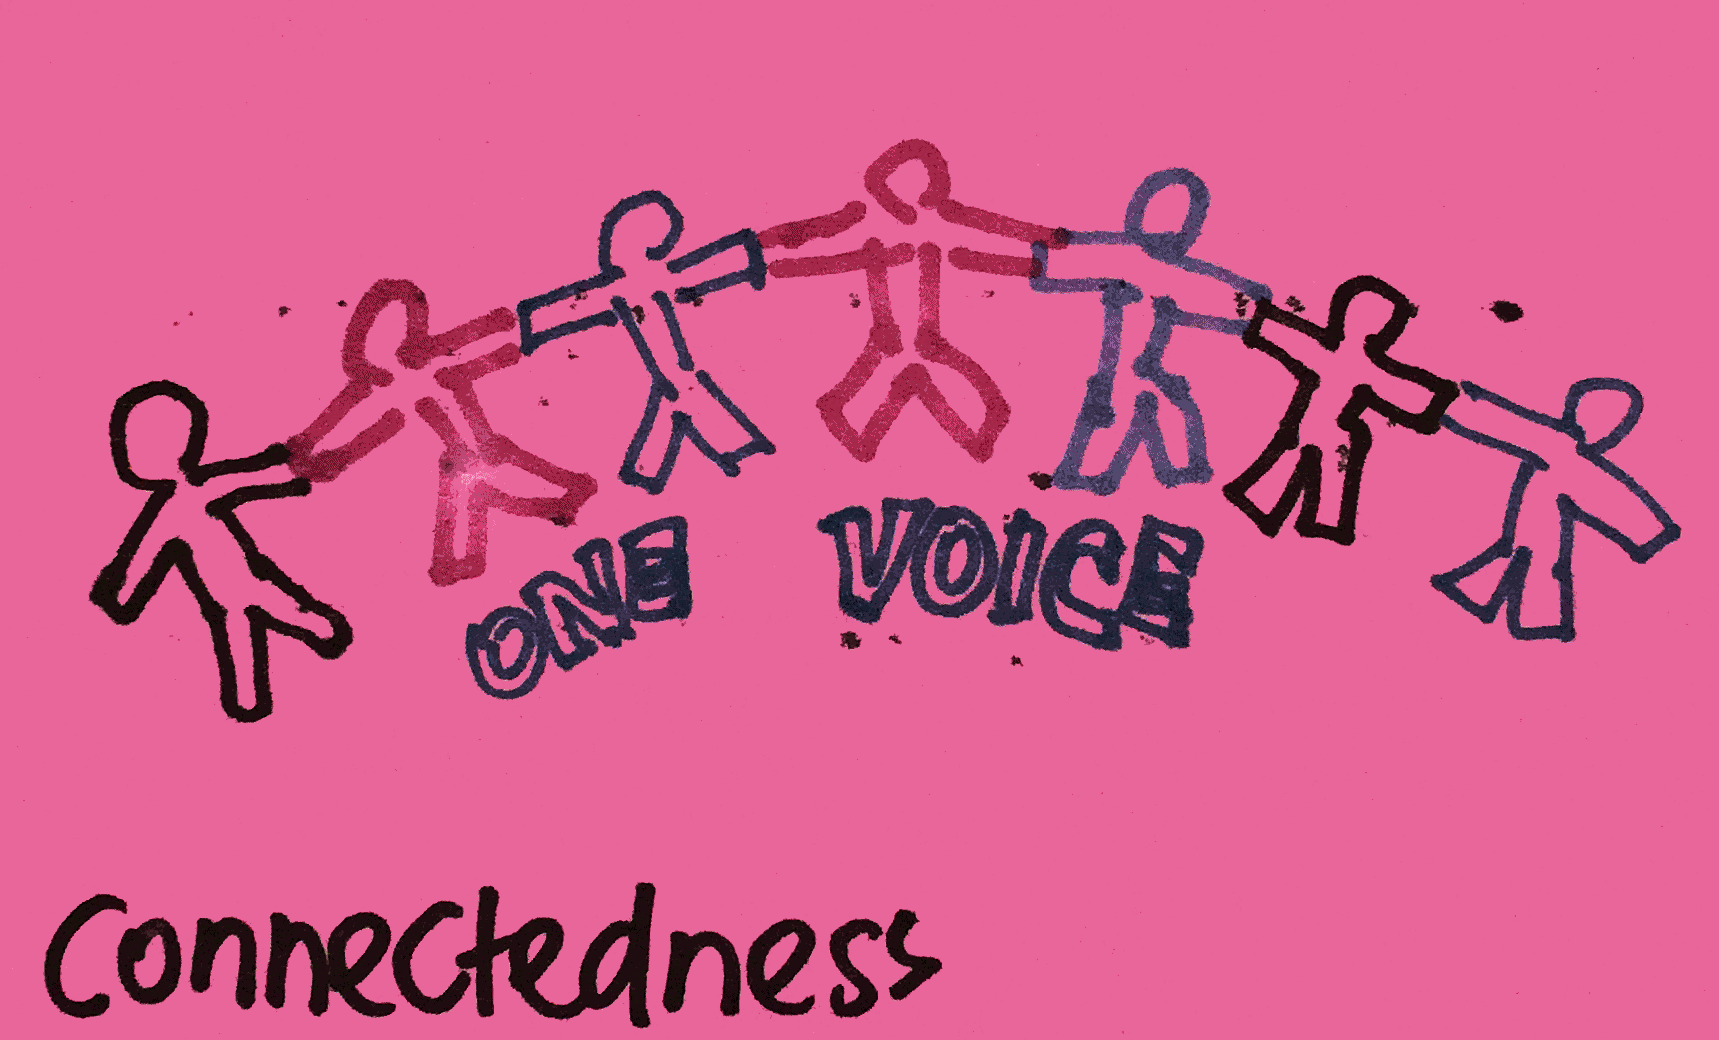 Connectedness StrengthsFinder Singapore One Voice